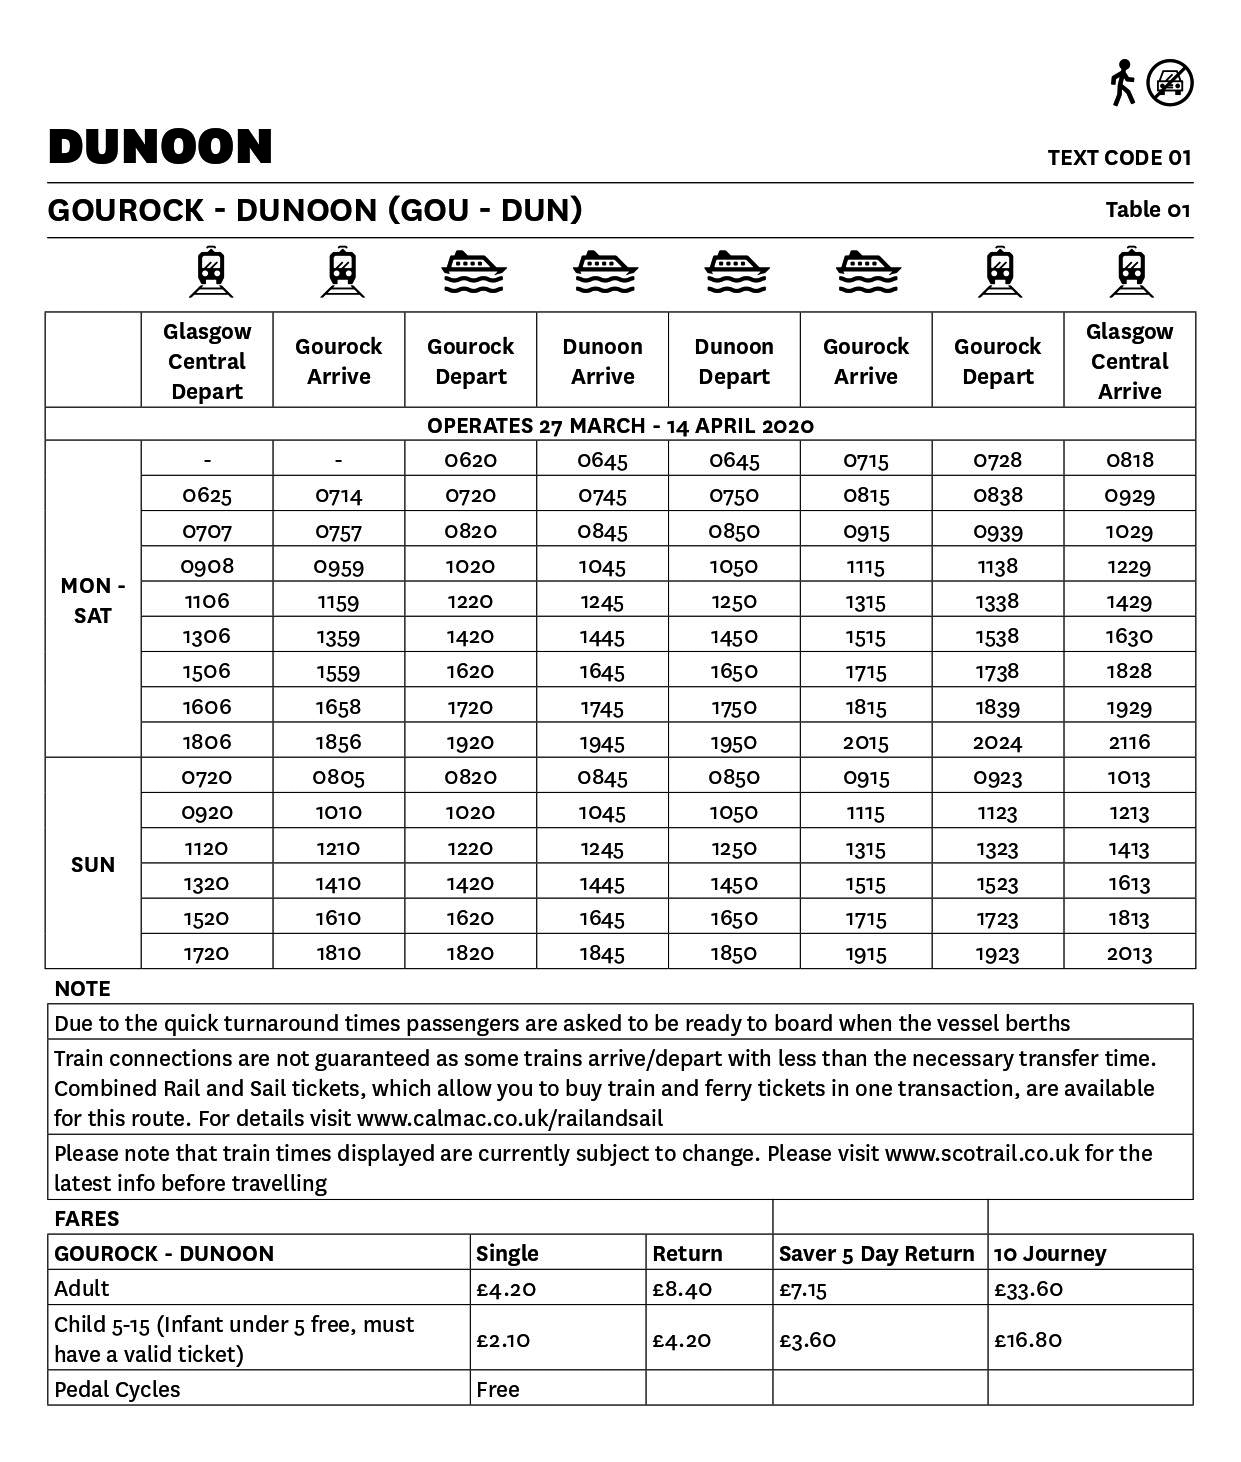 Table 01 Gourock - Dunoon - Essential lifeline timetable - This image is currently not accessible to screen readers. Please phone 0800 066 5000 for timetable details